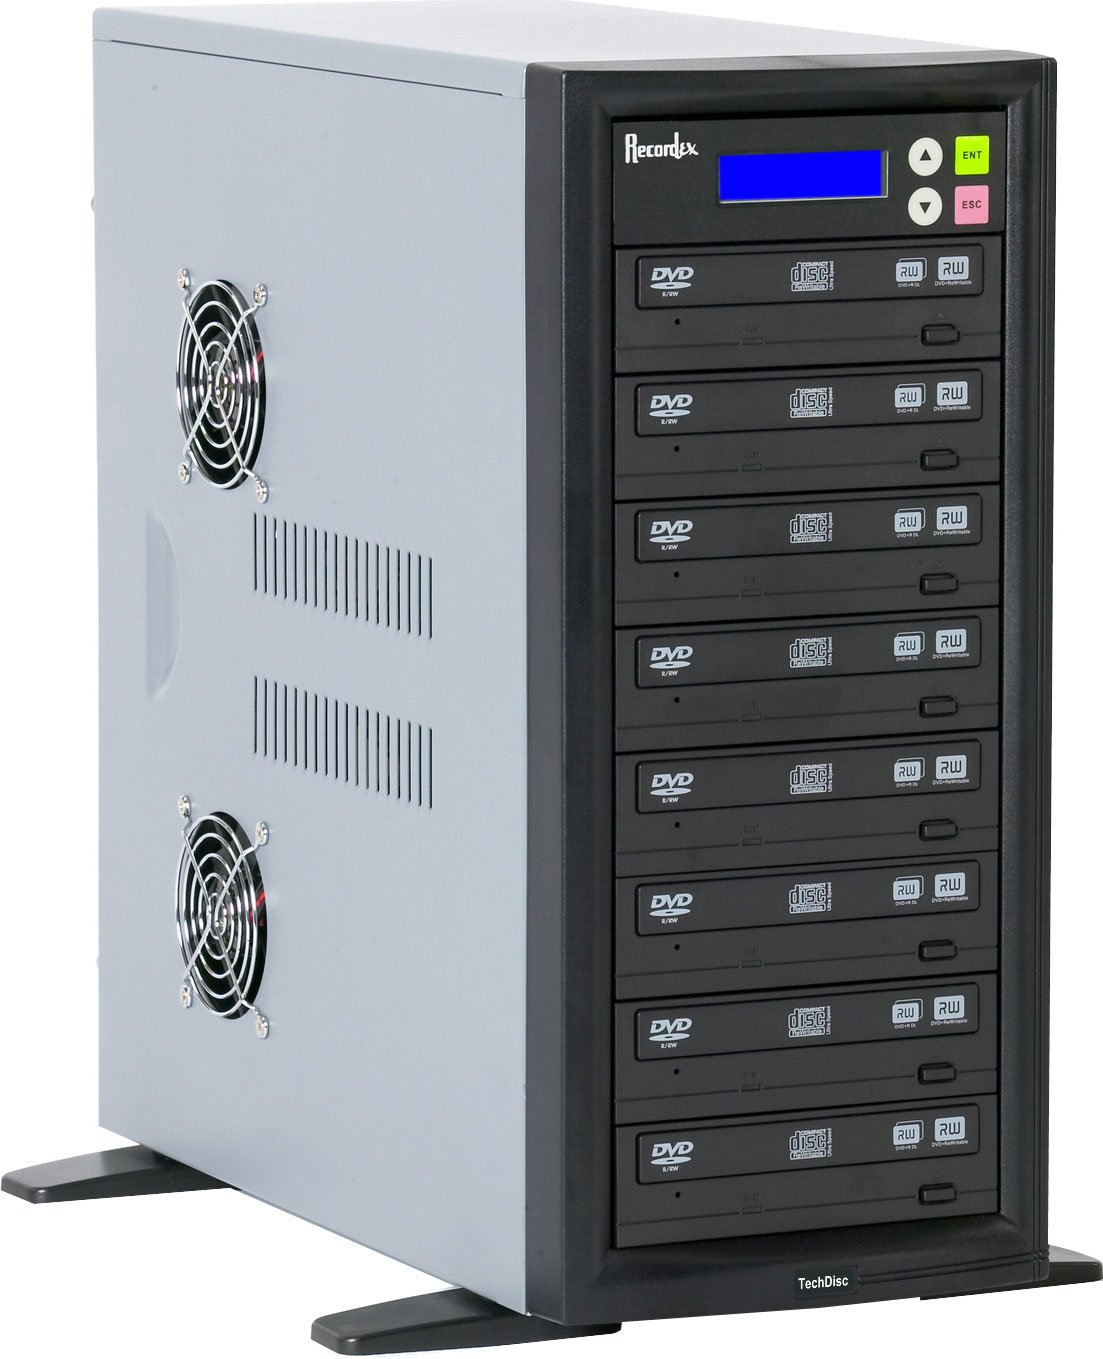 CD/DVD Duplicator with 7 Target Drives